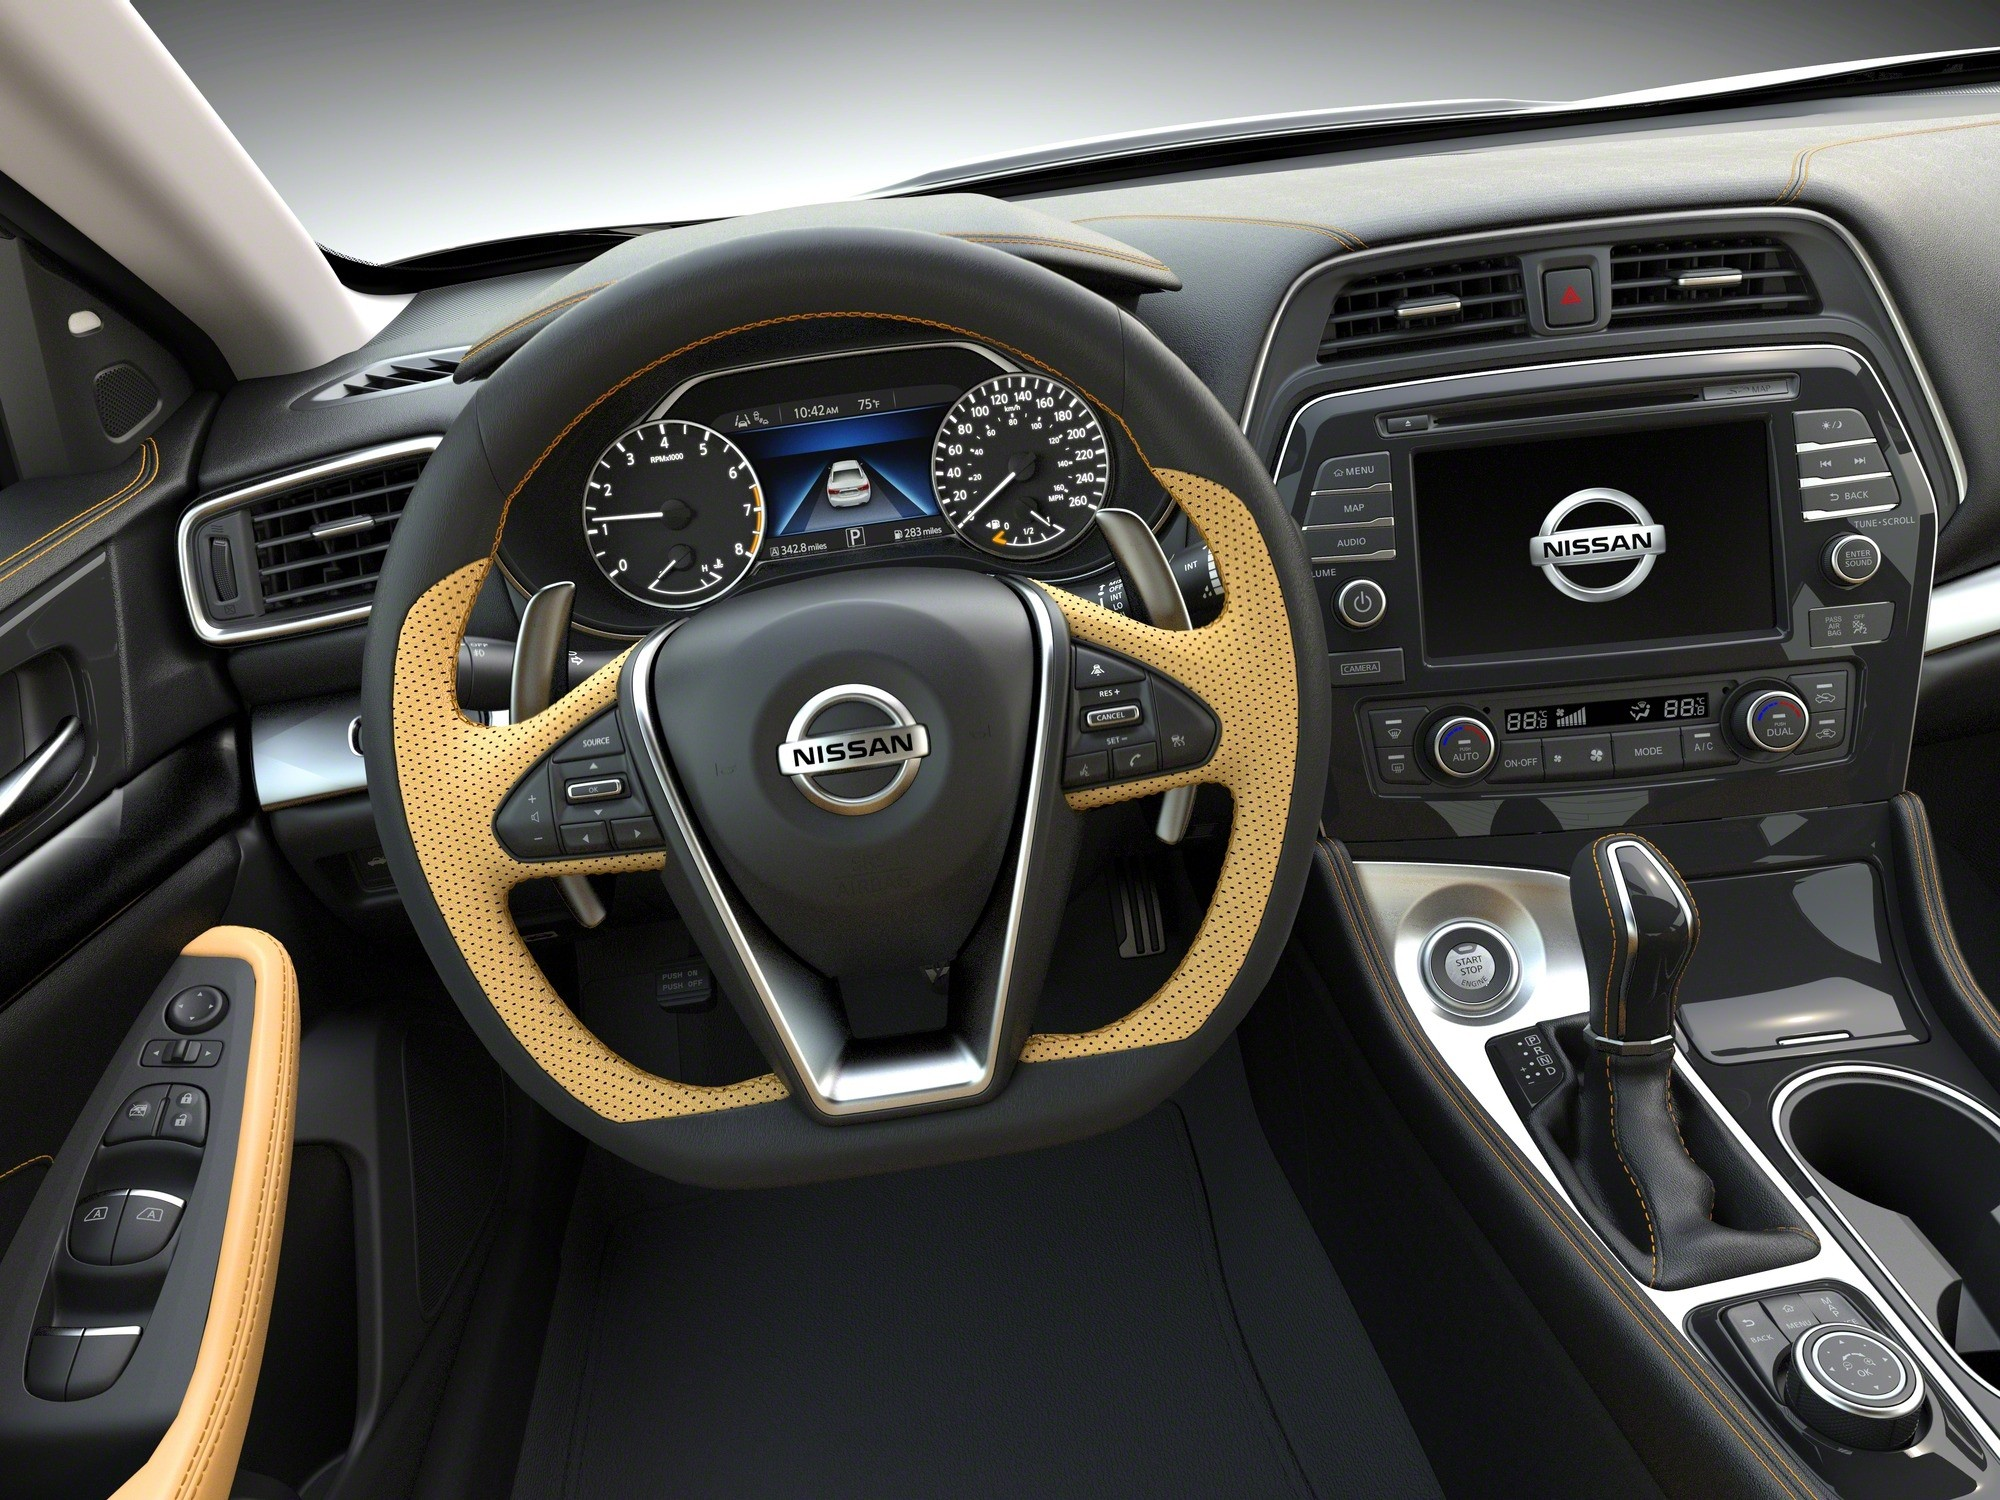 prices u world trucks inventory view nissan change price in location dealer mountain cars news report s maxima ca